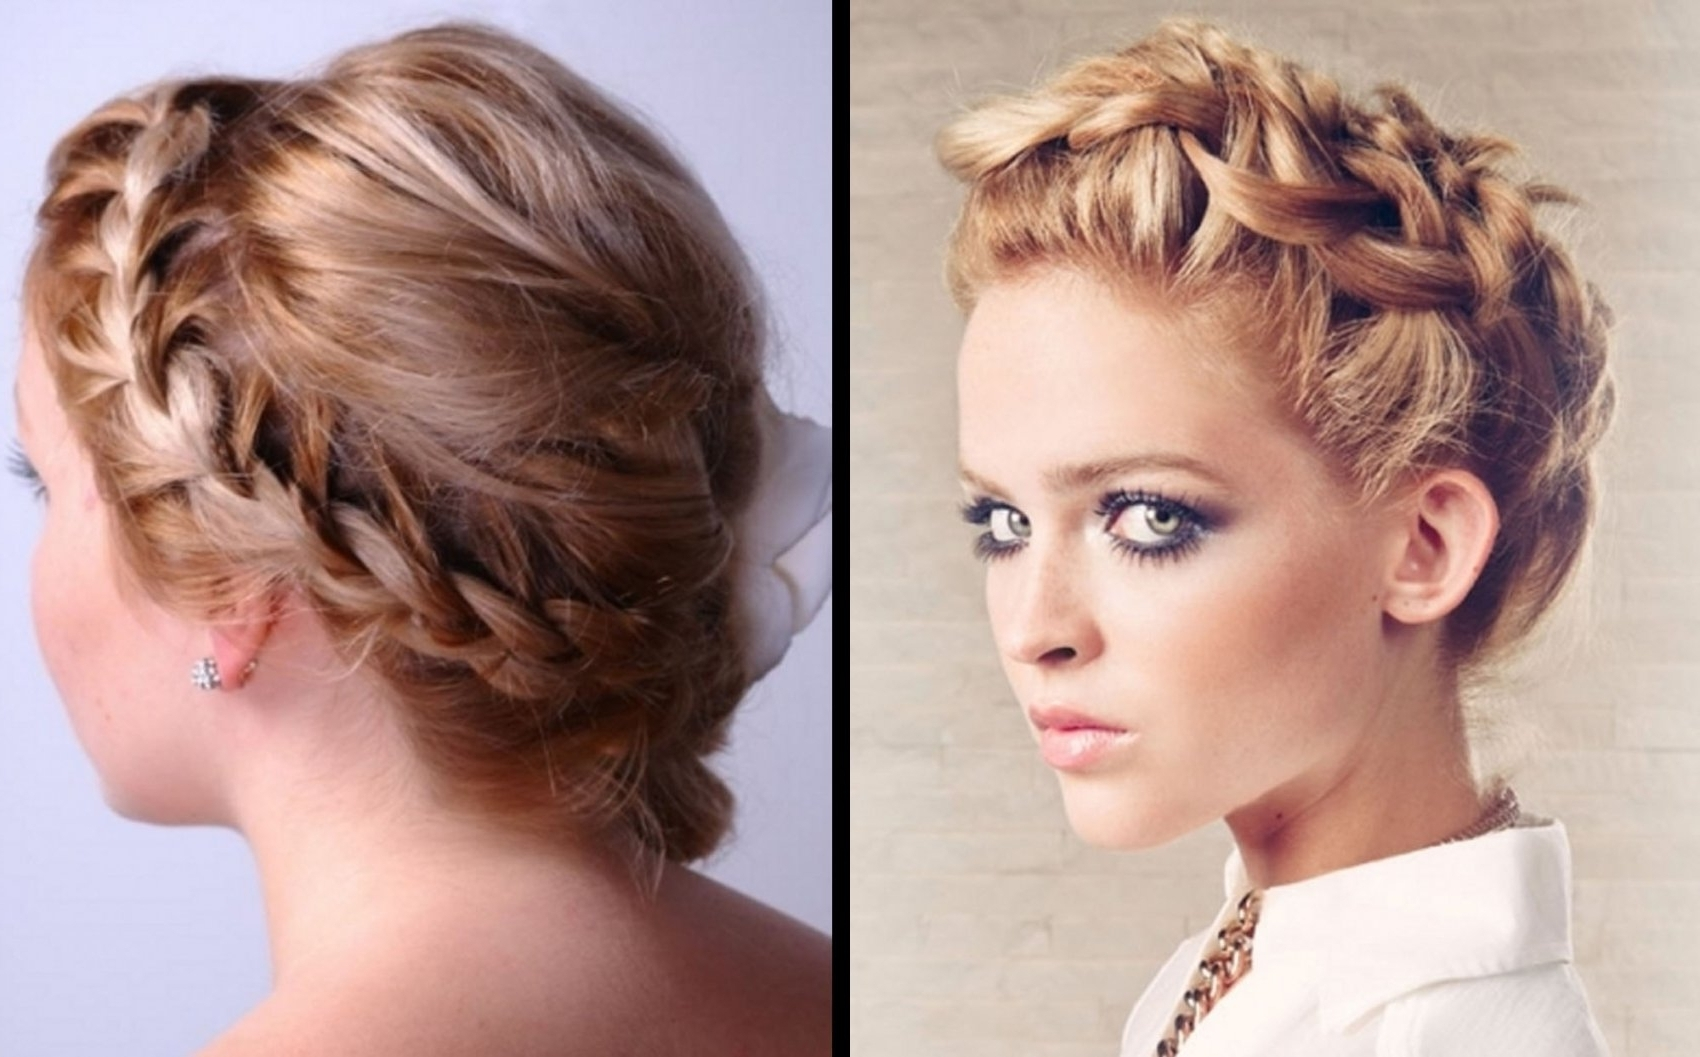 Elegant Updo Hairstyles For Short Hair 90 Ideas With Updo | Best Inside Elegant Updo Hairstyles For Short Hair (View 11 of 15)